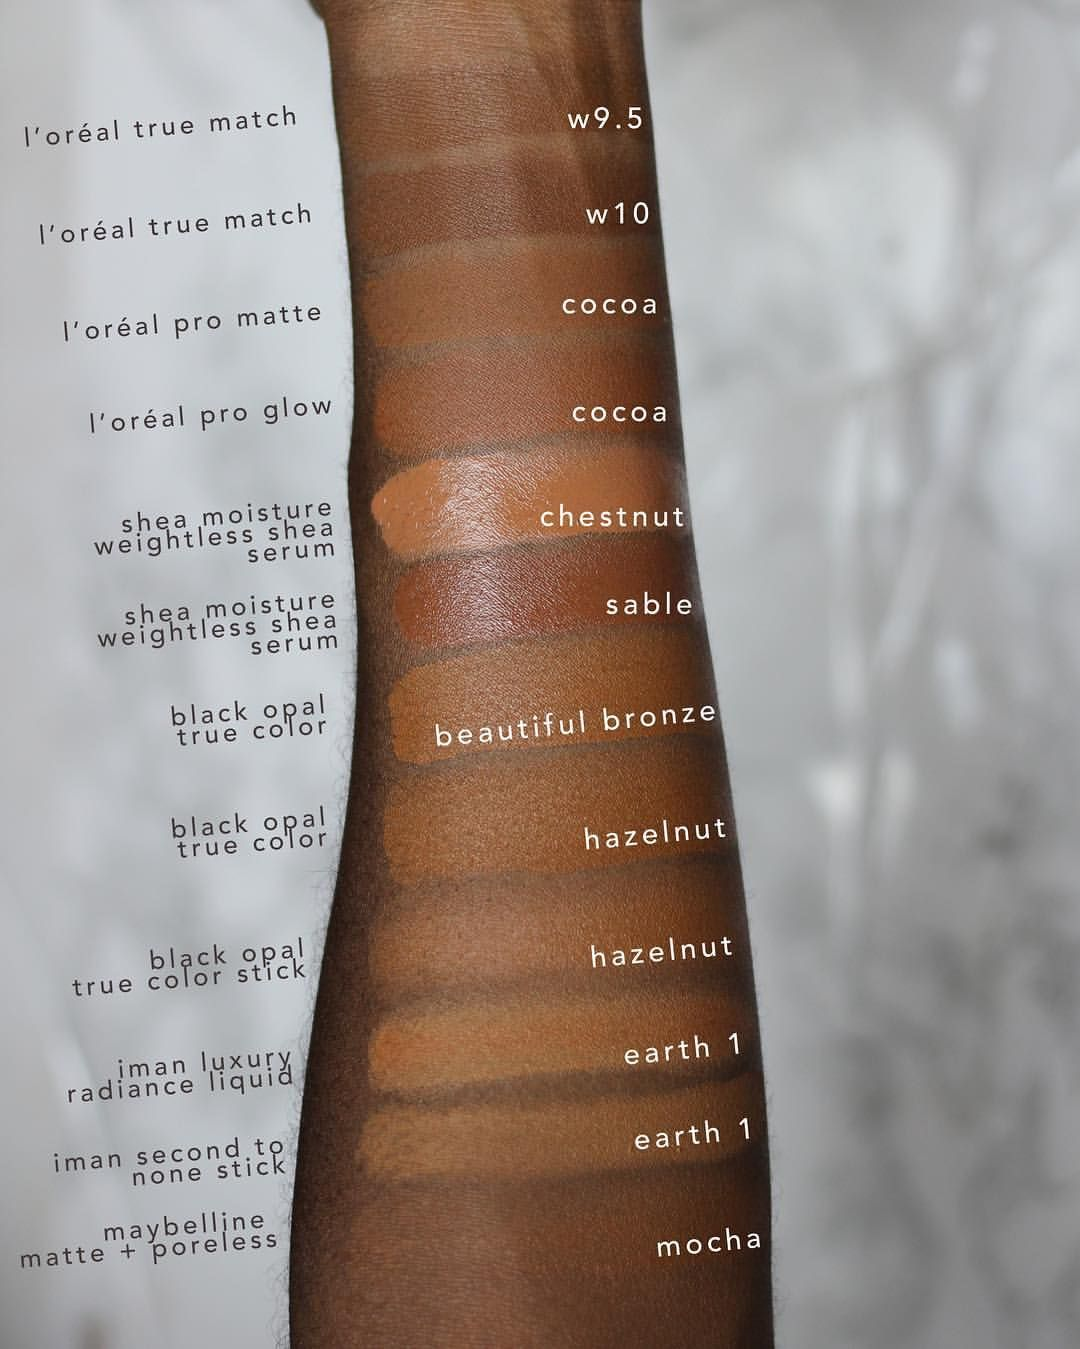 Makeup revolution concealer swatches vs tarte shape tape